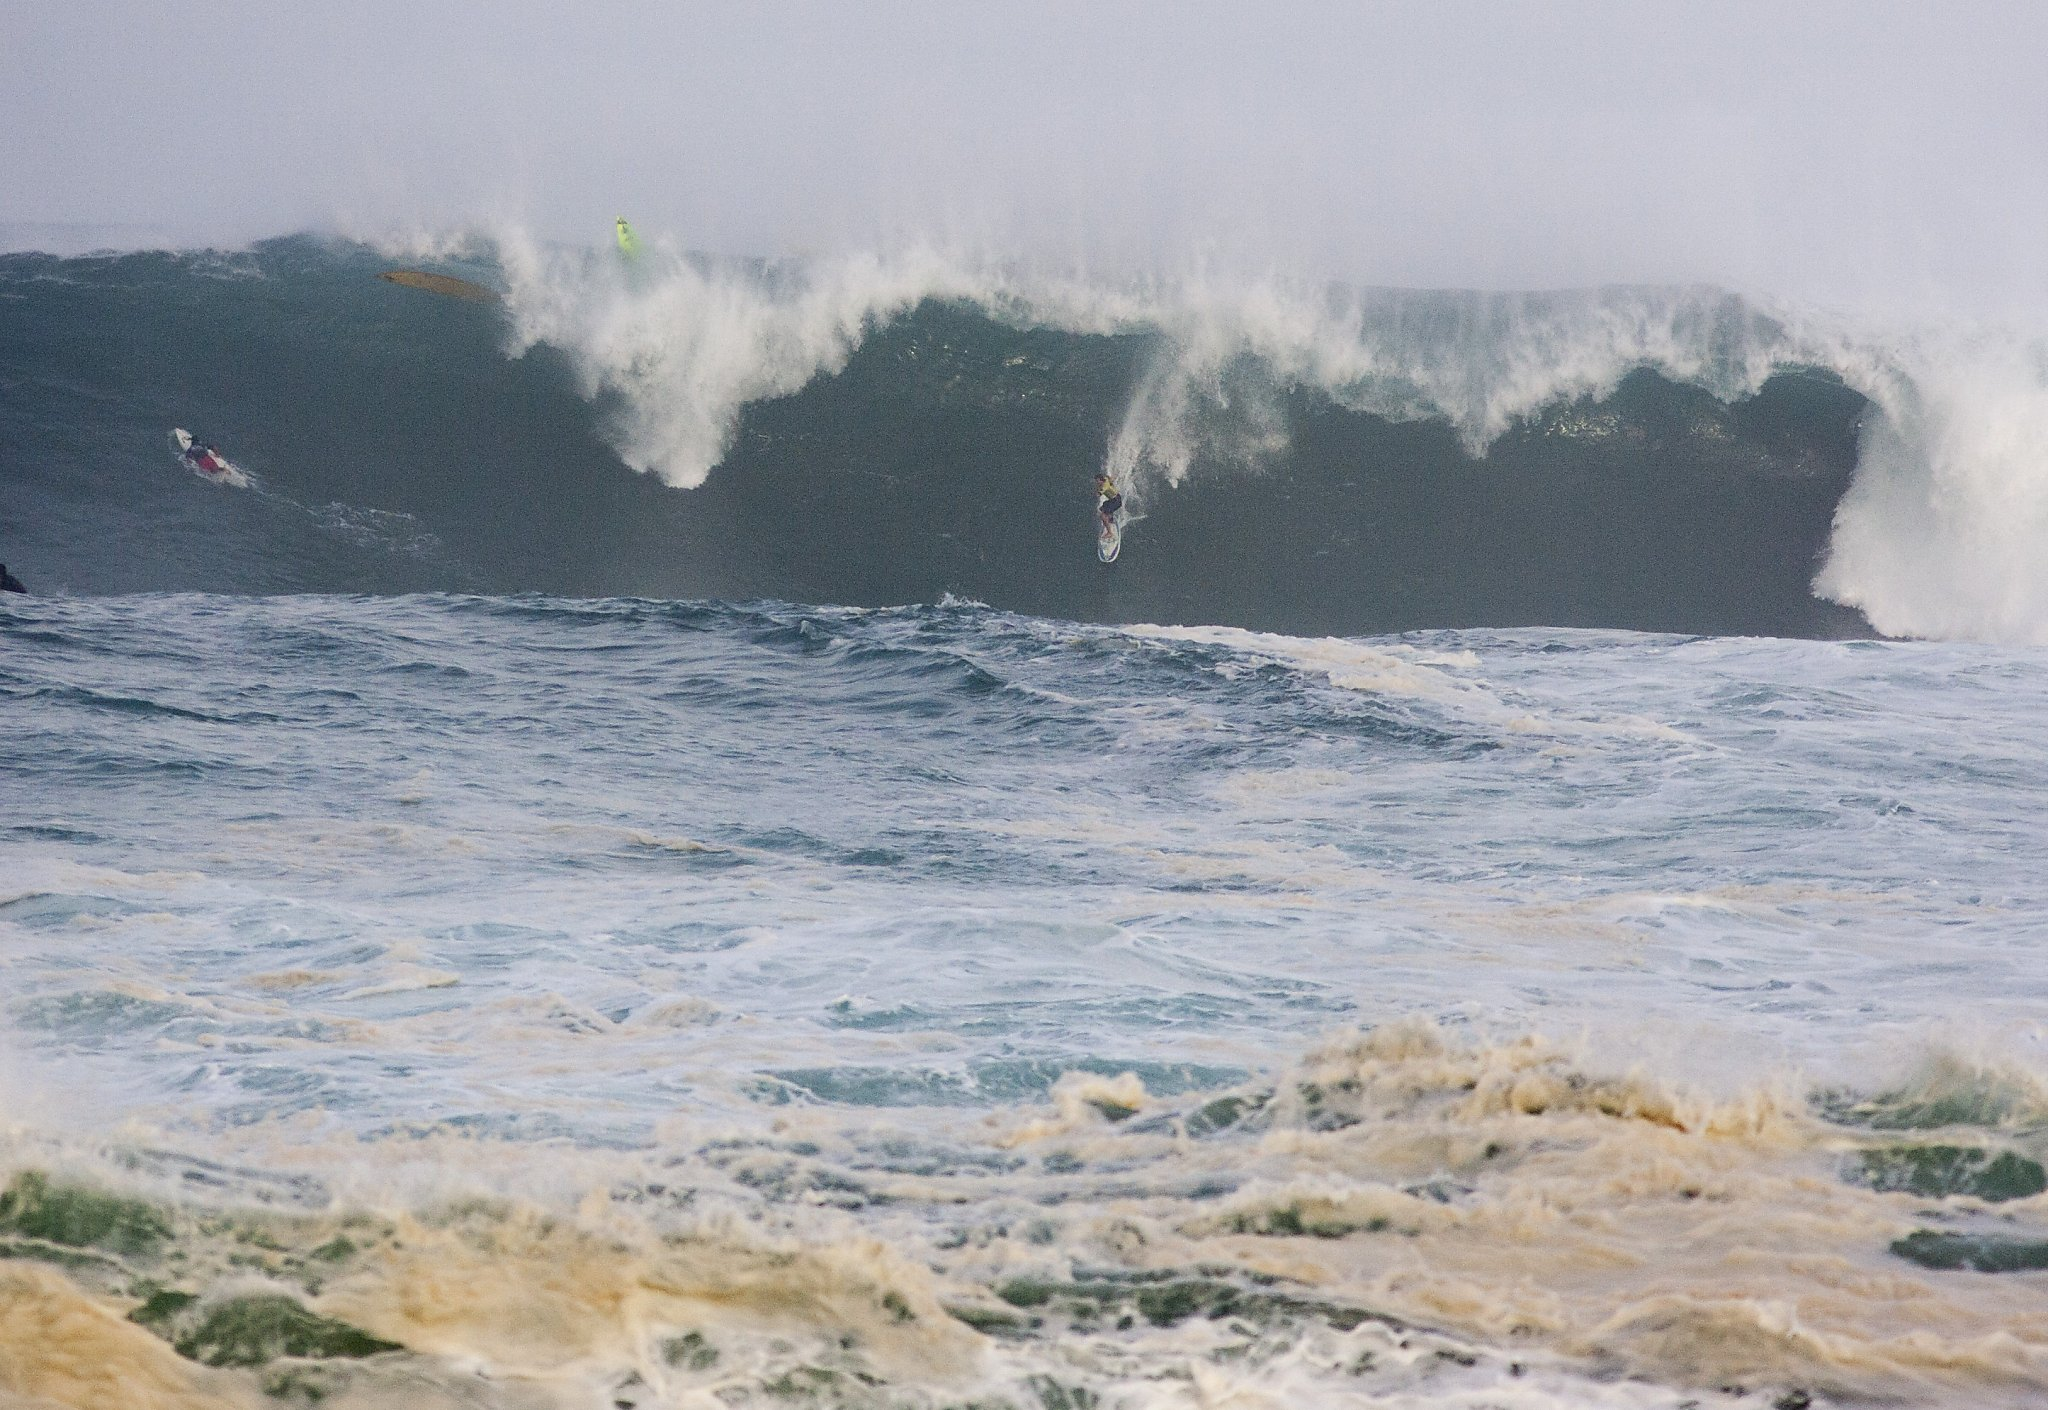 f77915f443 The Eddie  Big-wave surfing competition at its best - SFGate